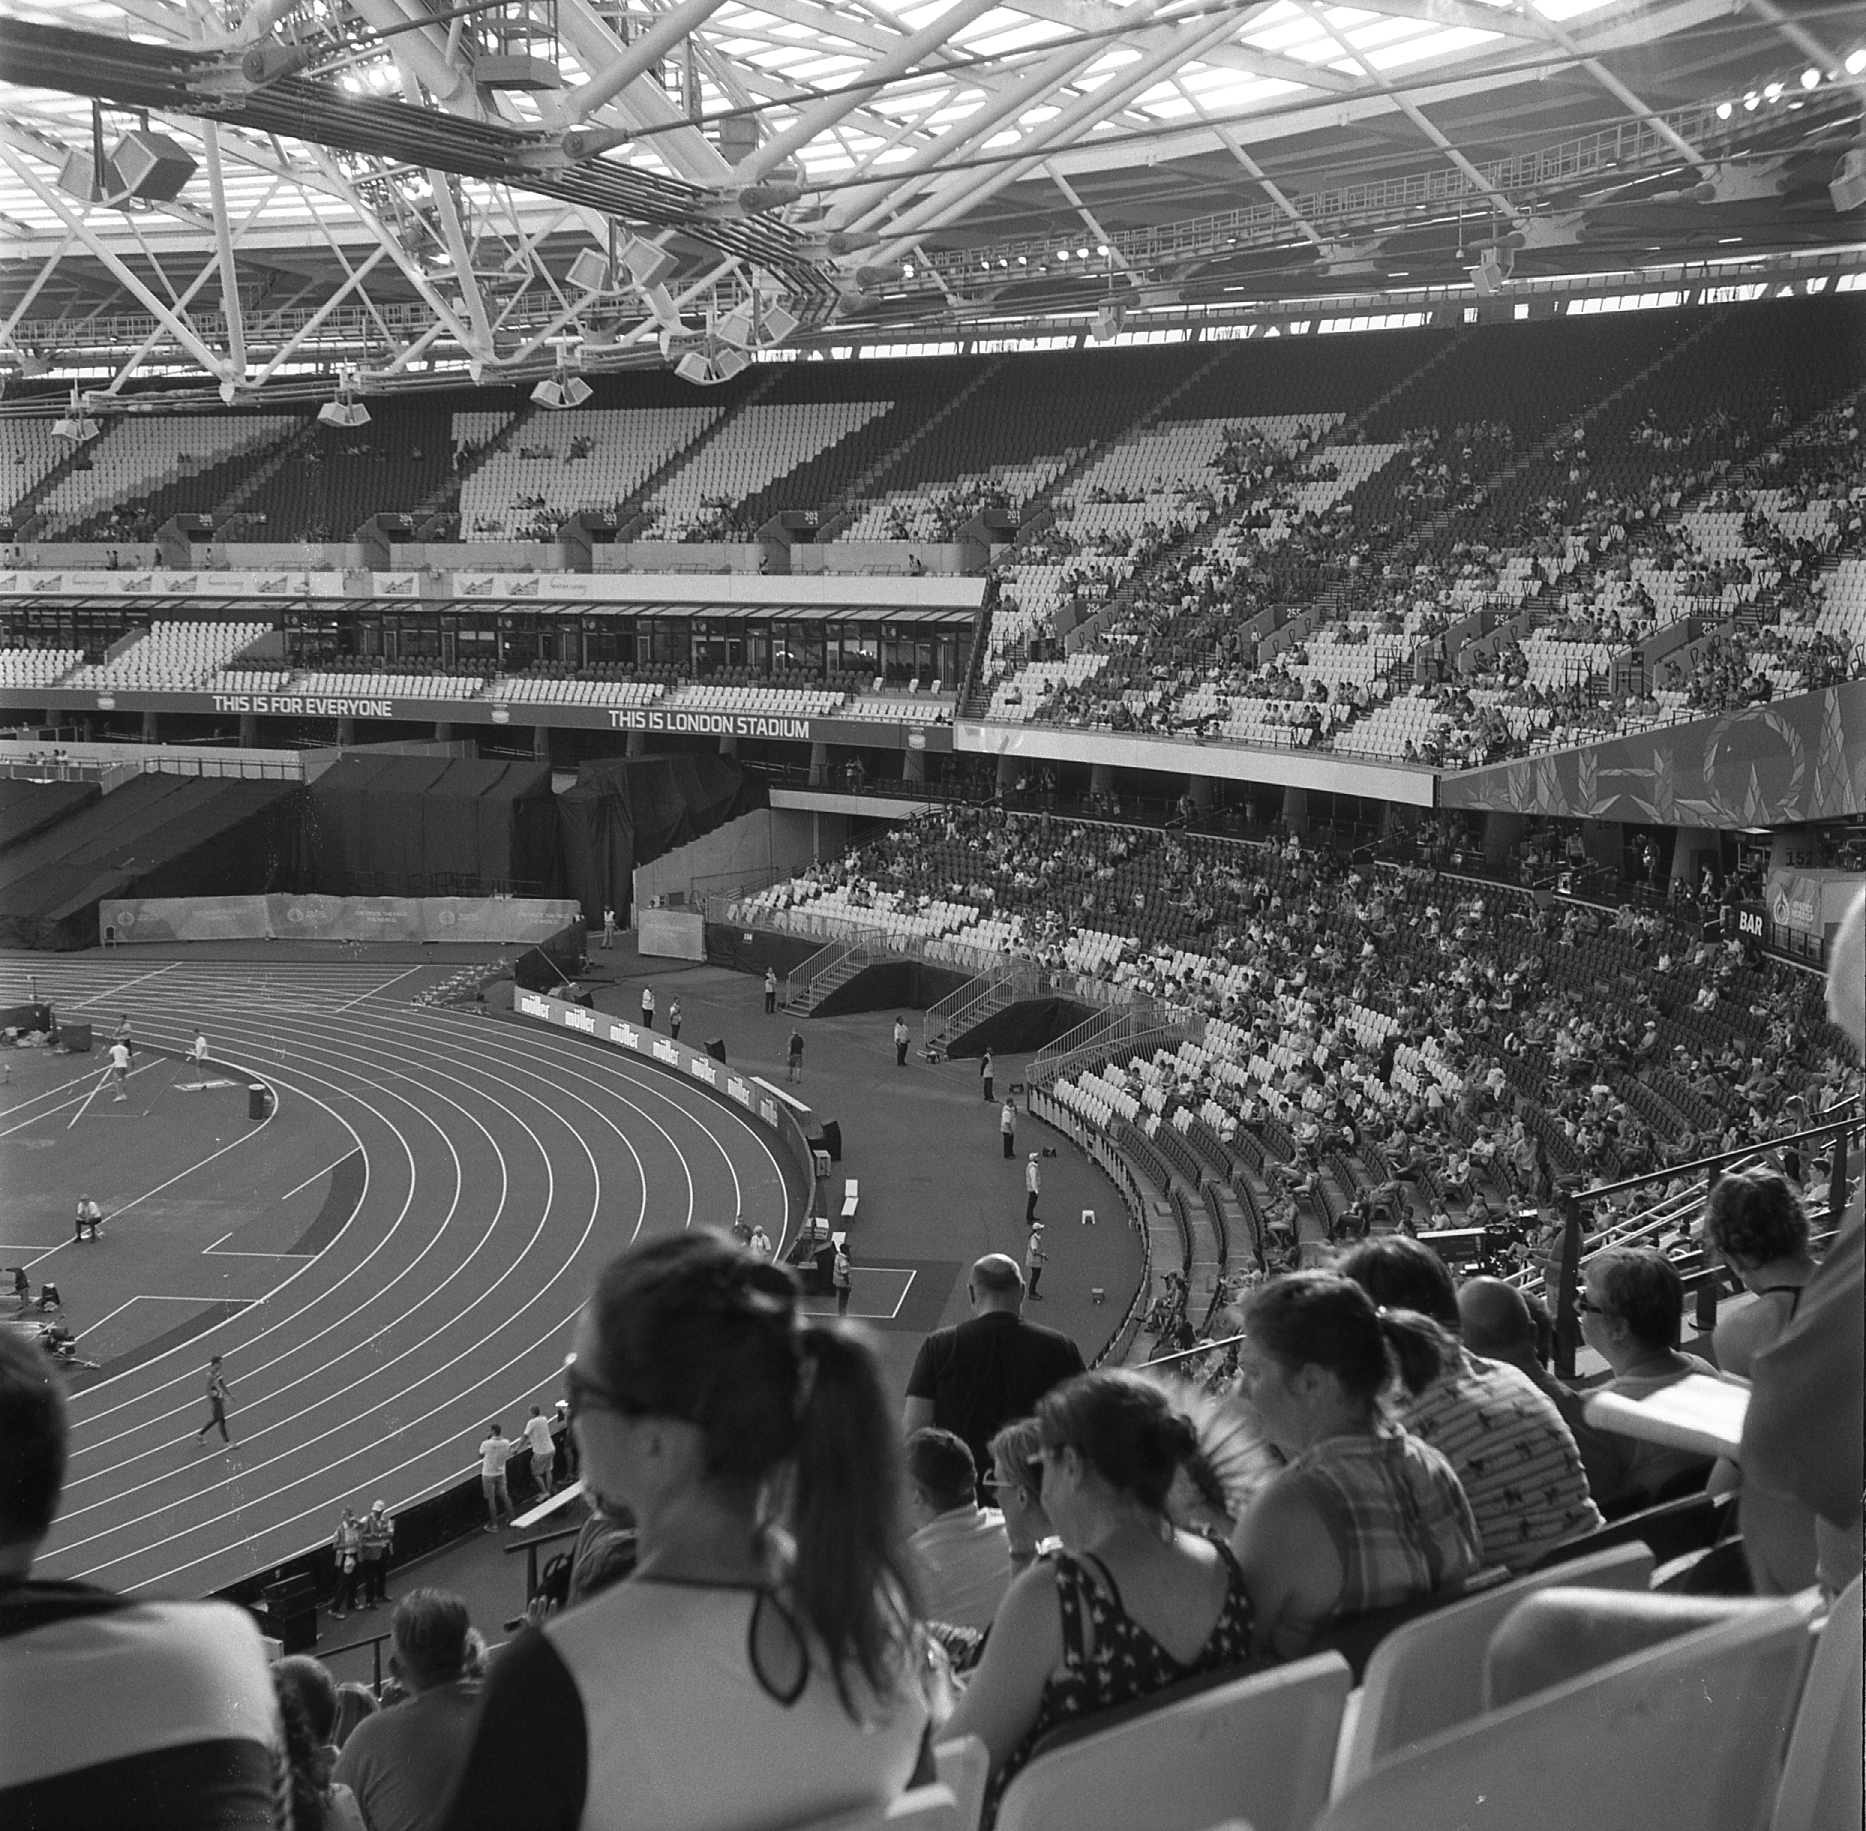 yashica 44 tlr rerapan 100 bellini hydrofen london olympic stadium 127 format film black white world athletics